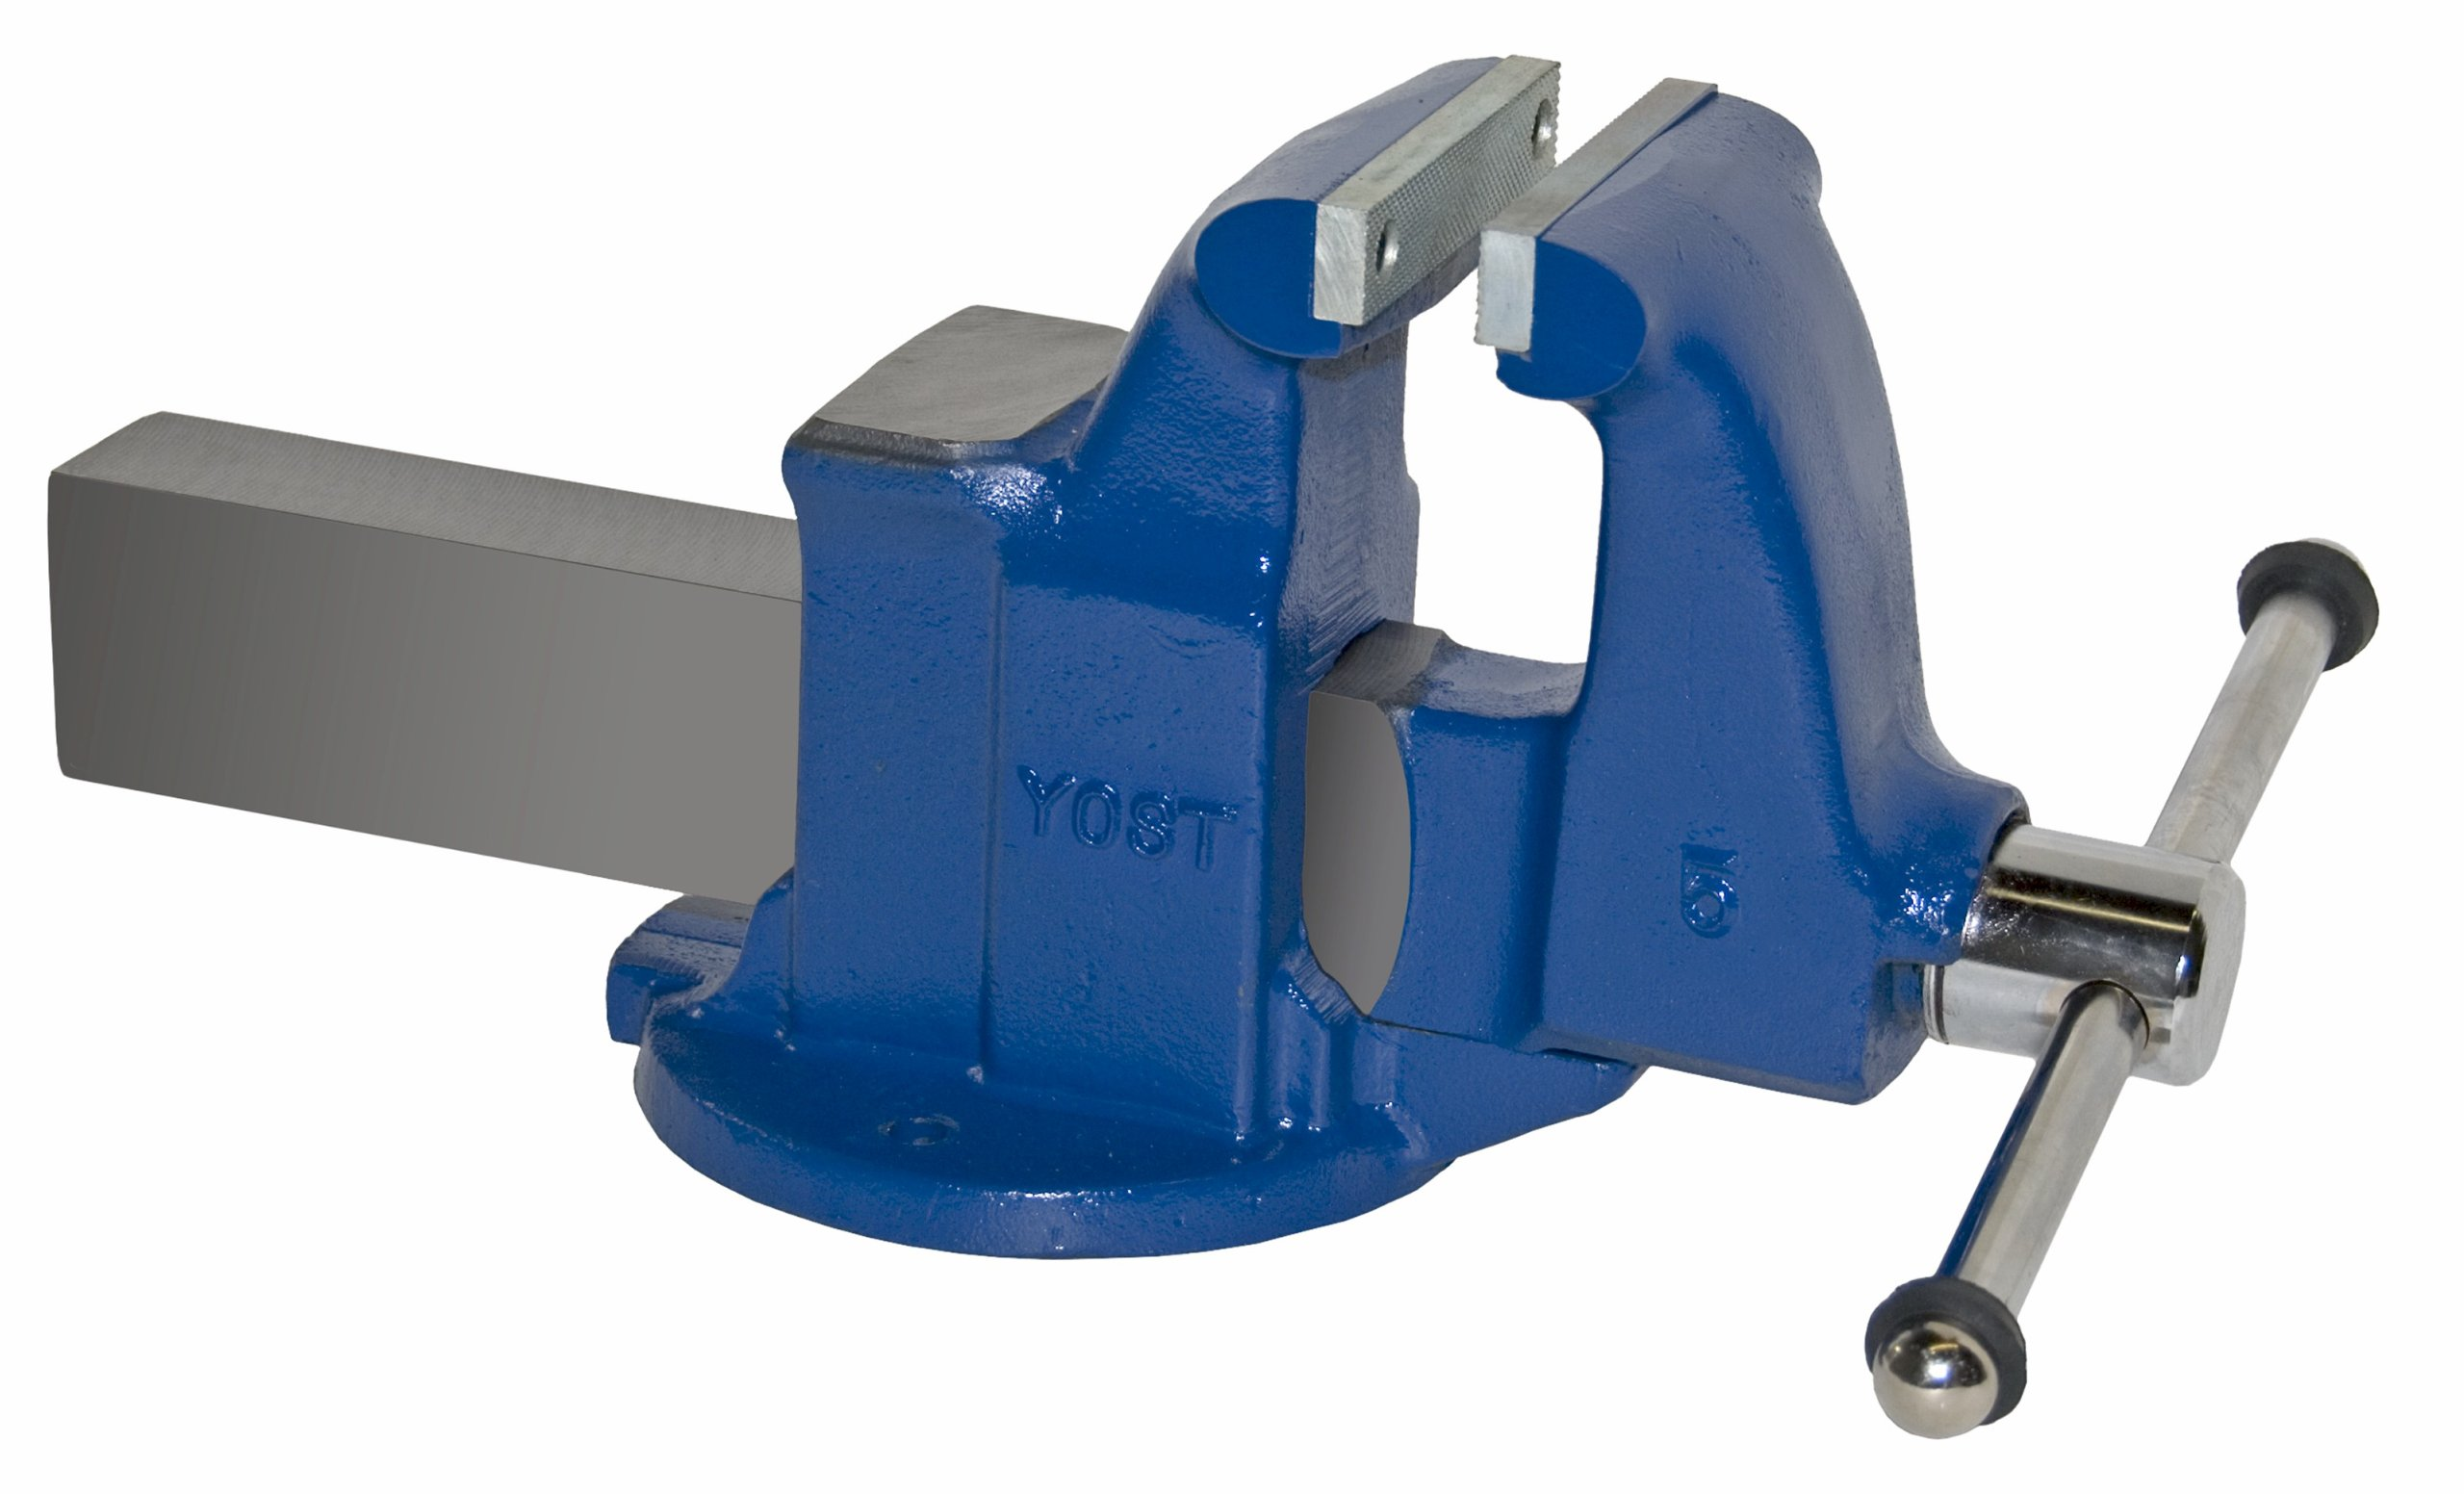 Yost Vises 105 5'' Machinist Vise with Stationary Base, Made in US